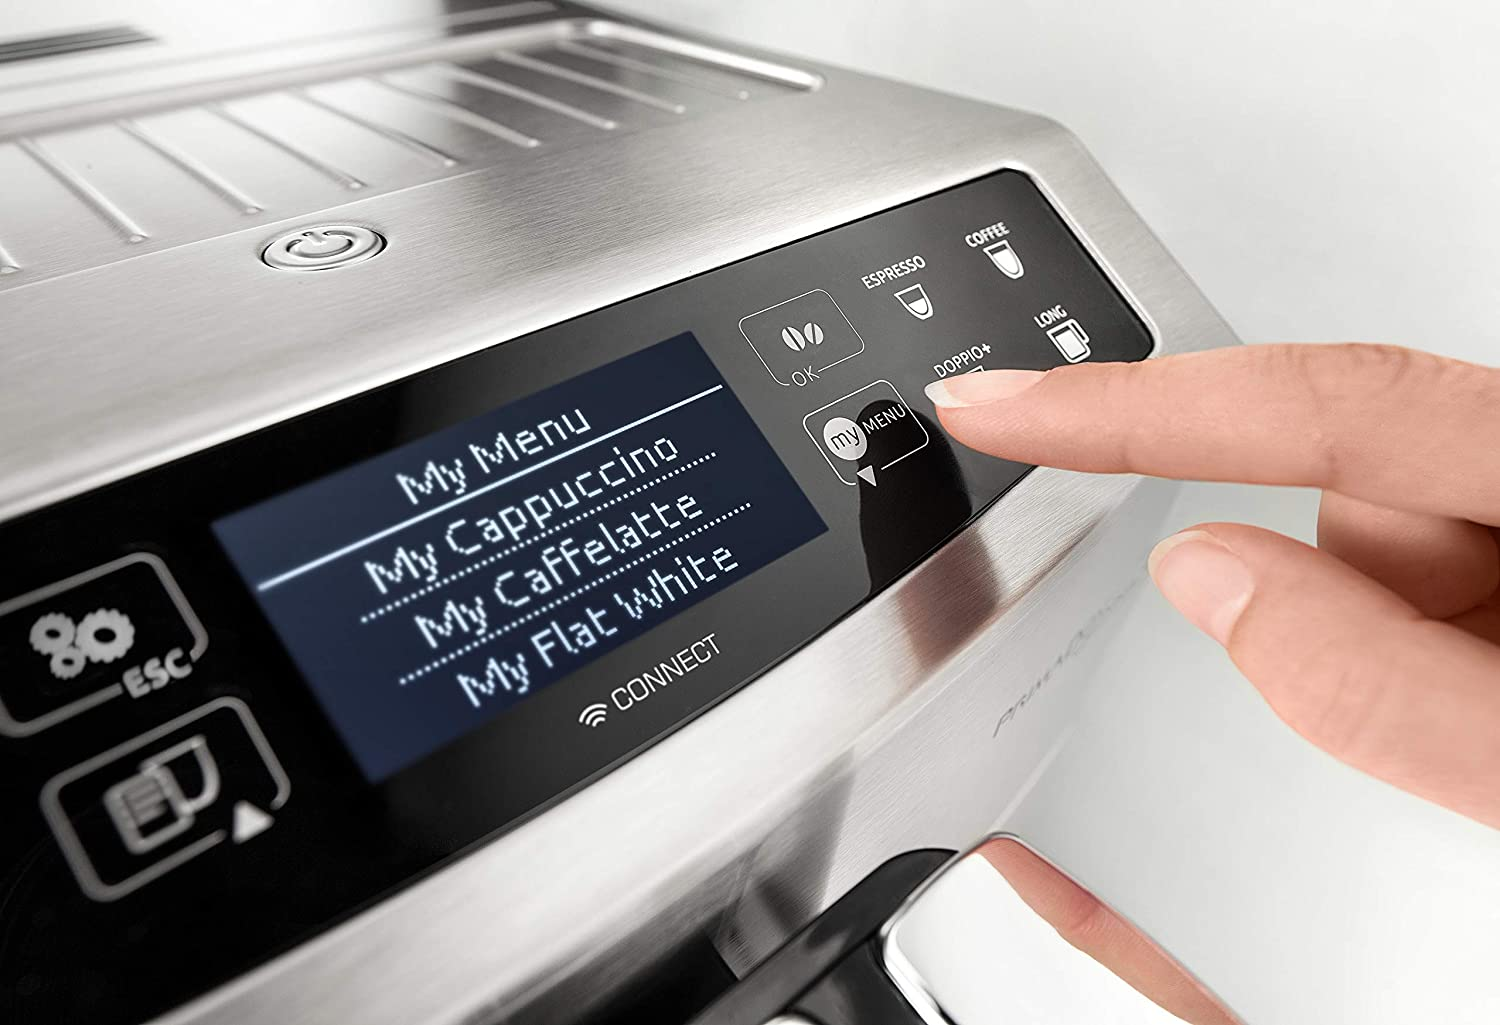 finger pressing a button on a coffee machine